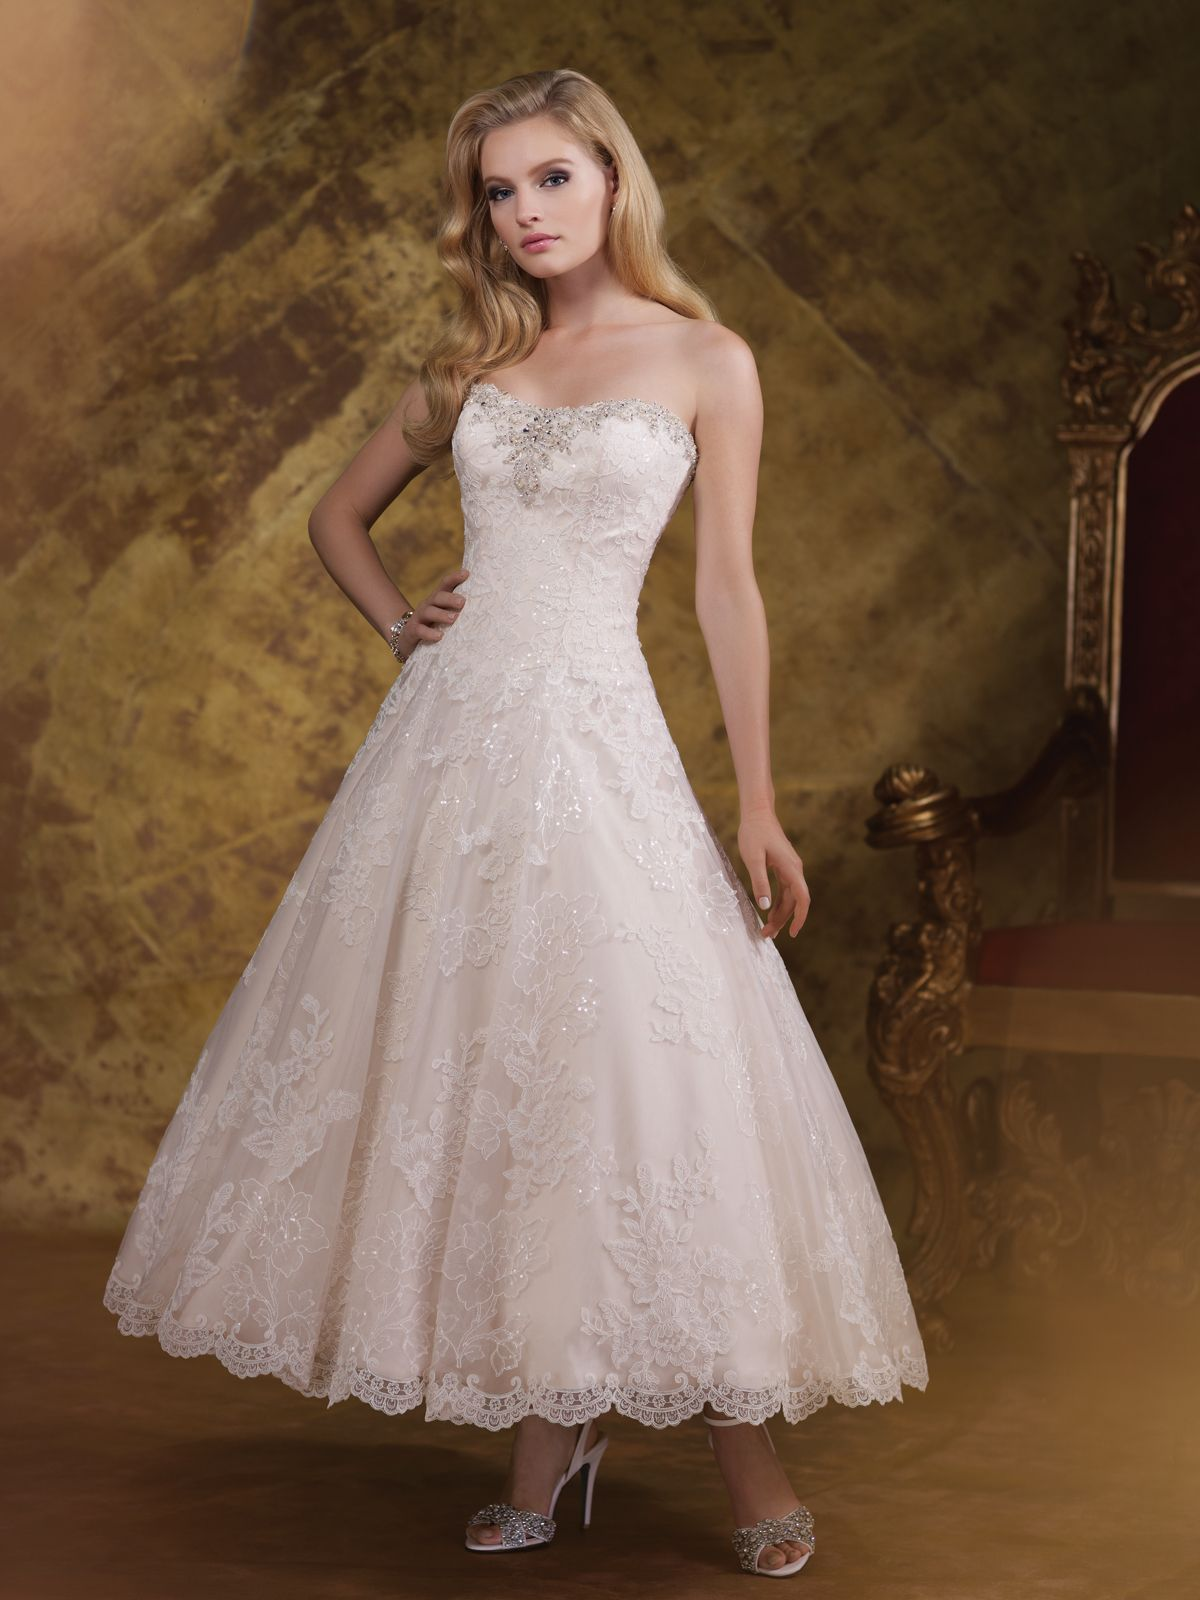 Wedding dresses collection u strapless sequin lace appliqué and